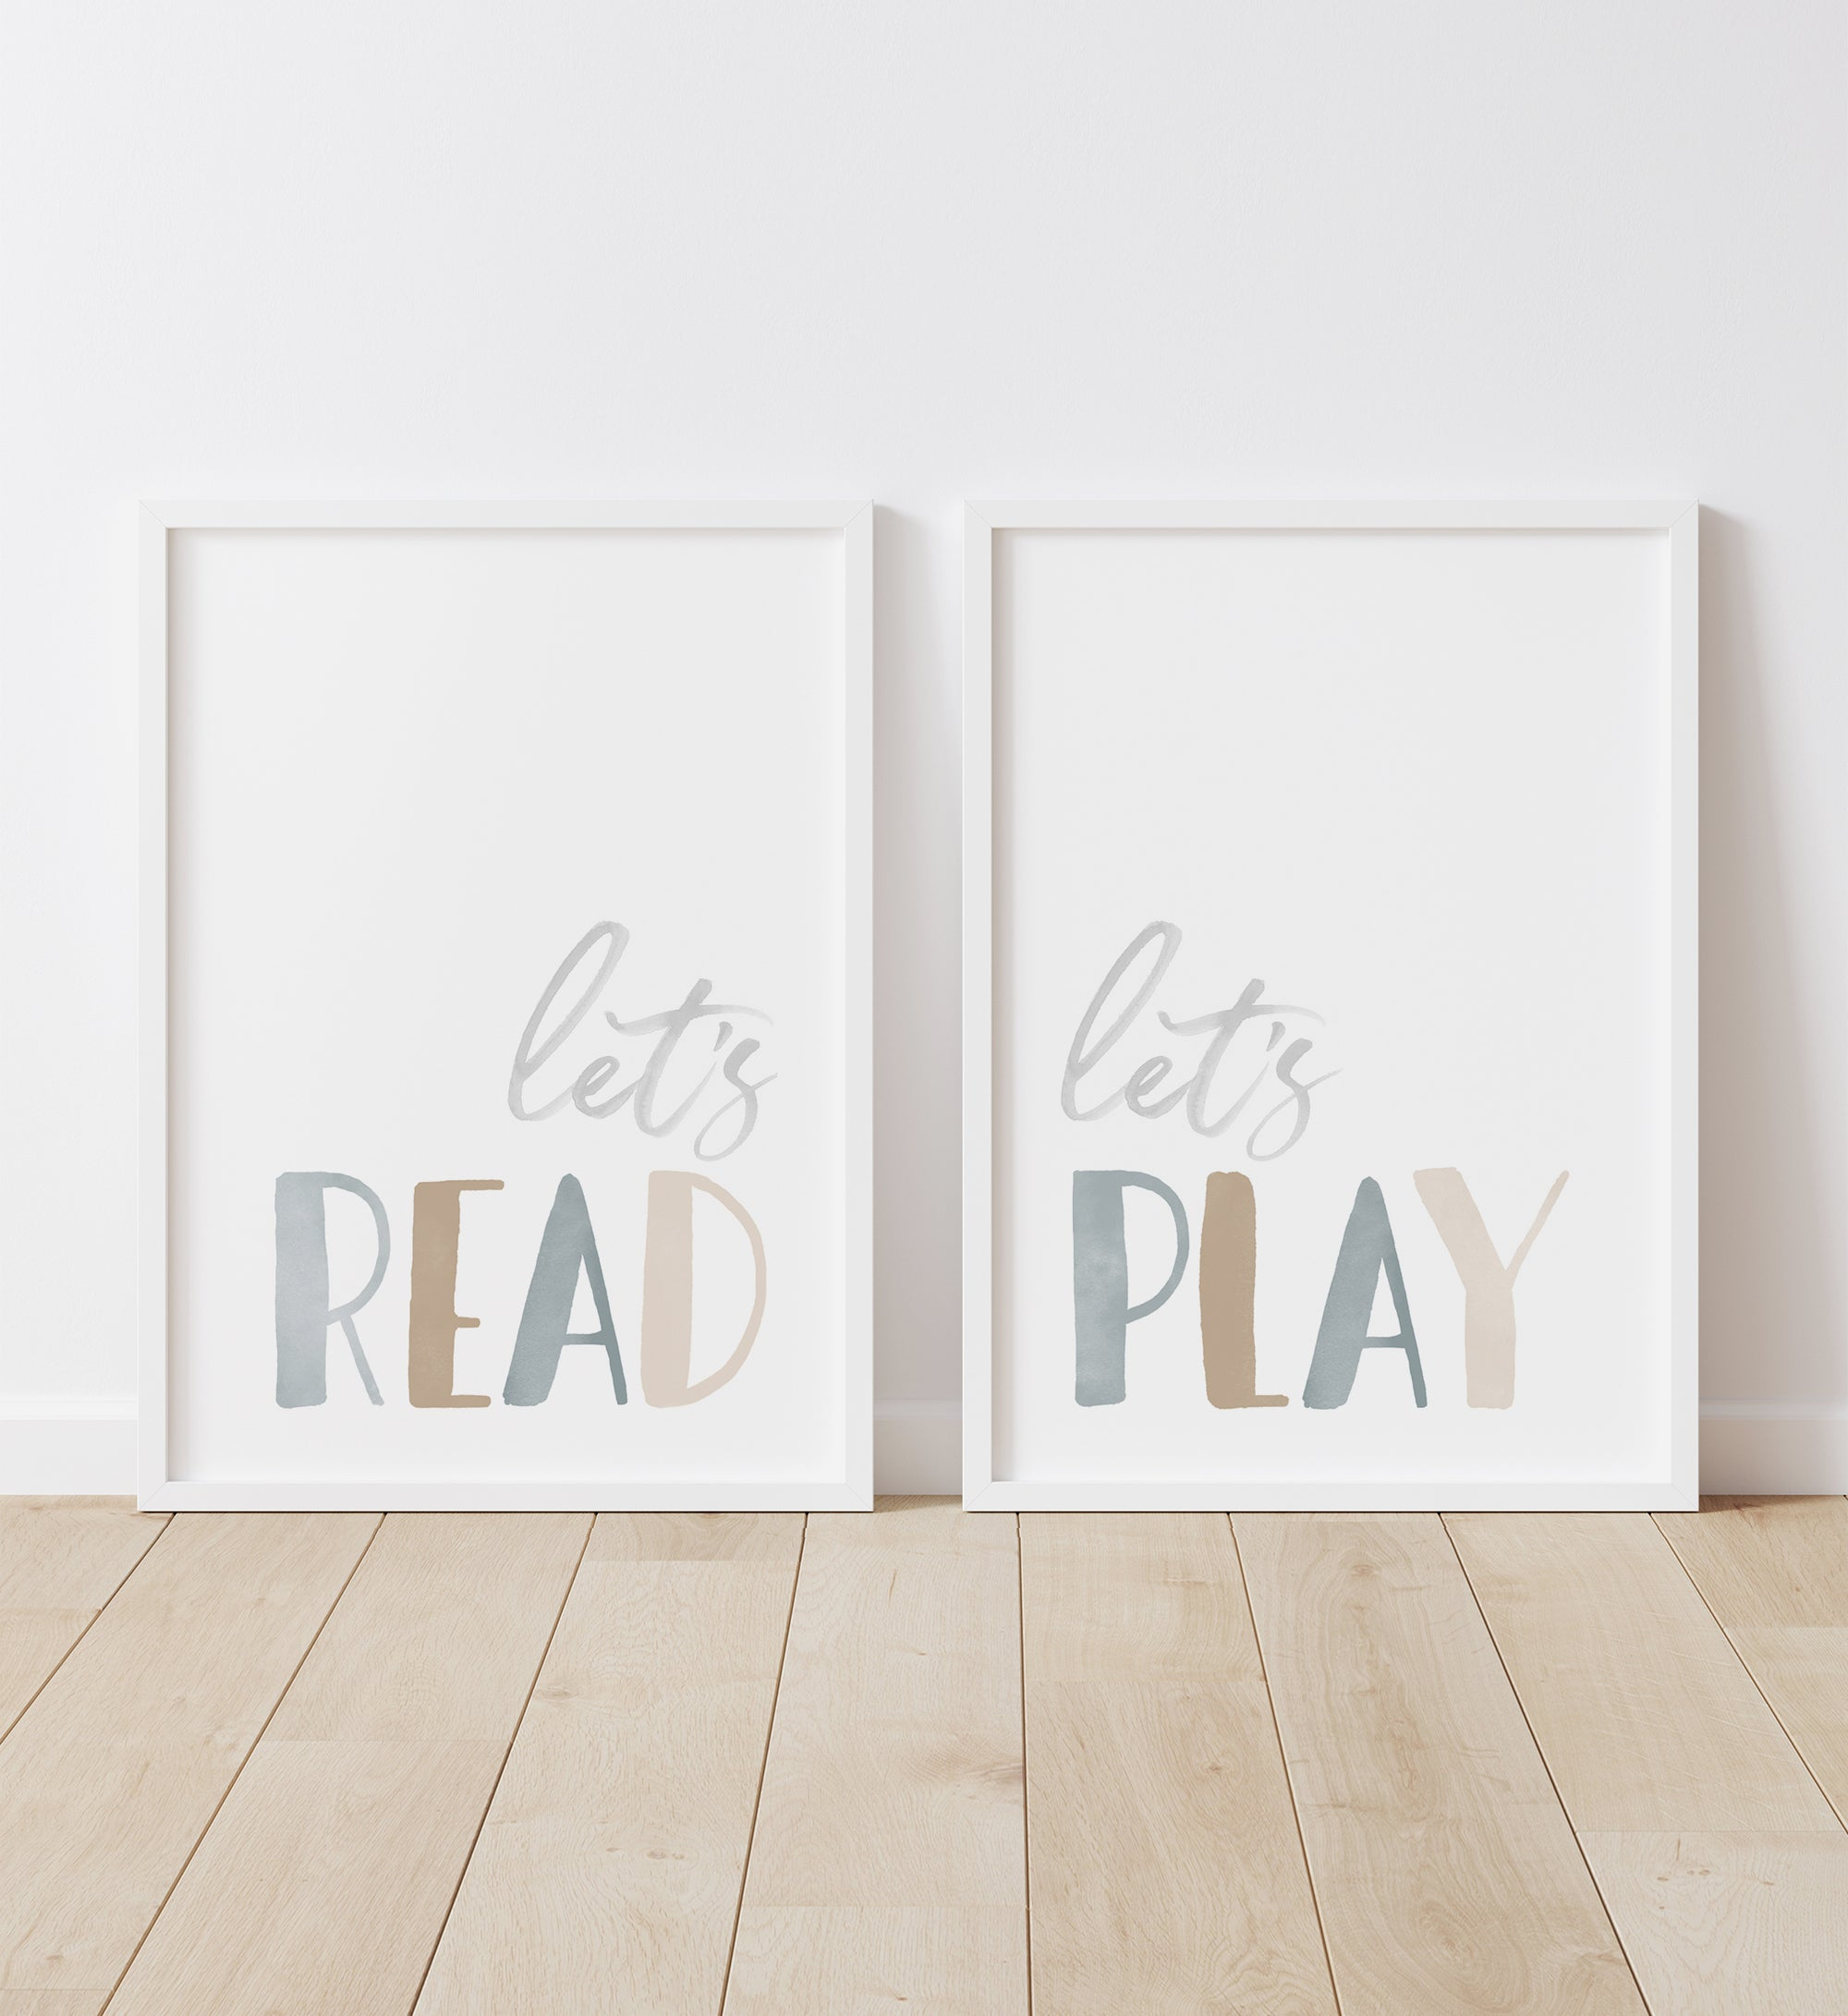 Let's Read, Let's Play - Blue and Neutral